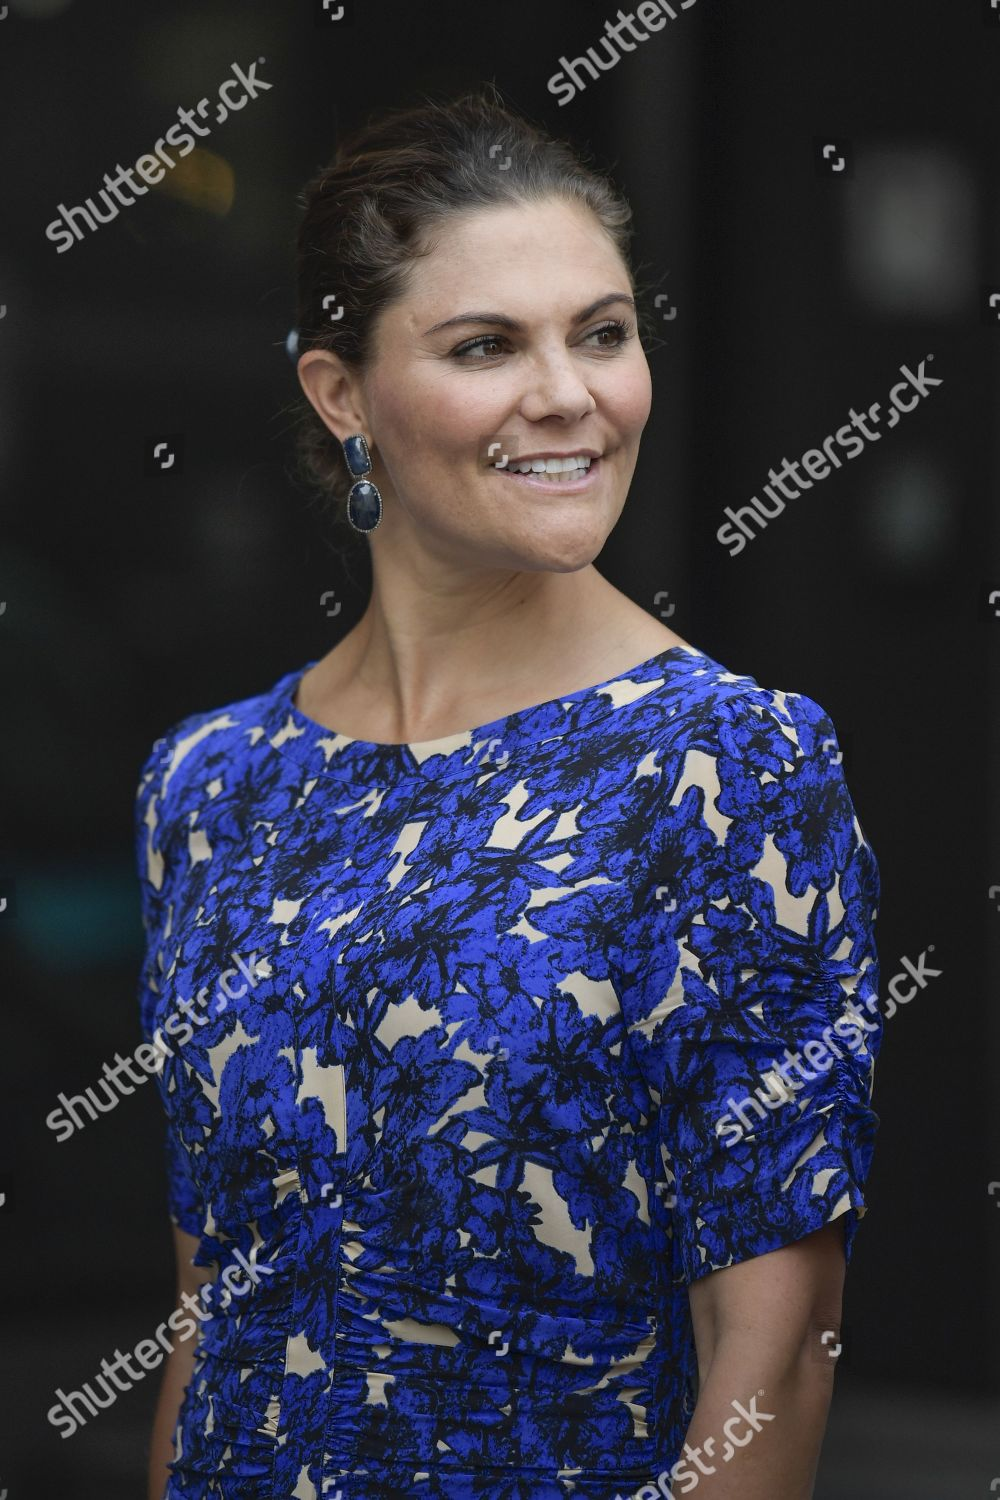 prince-daniel-and-crown-princess-victoria-at-visita-stockholm-sweden-shutterstock-editorial-10750019g.jpg